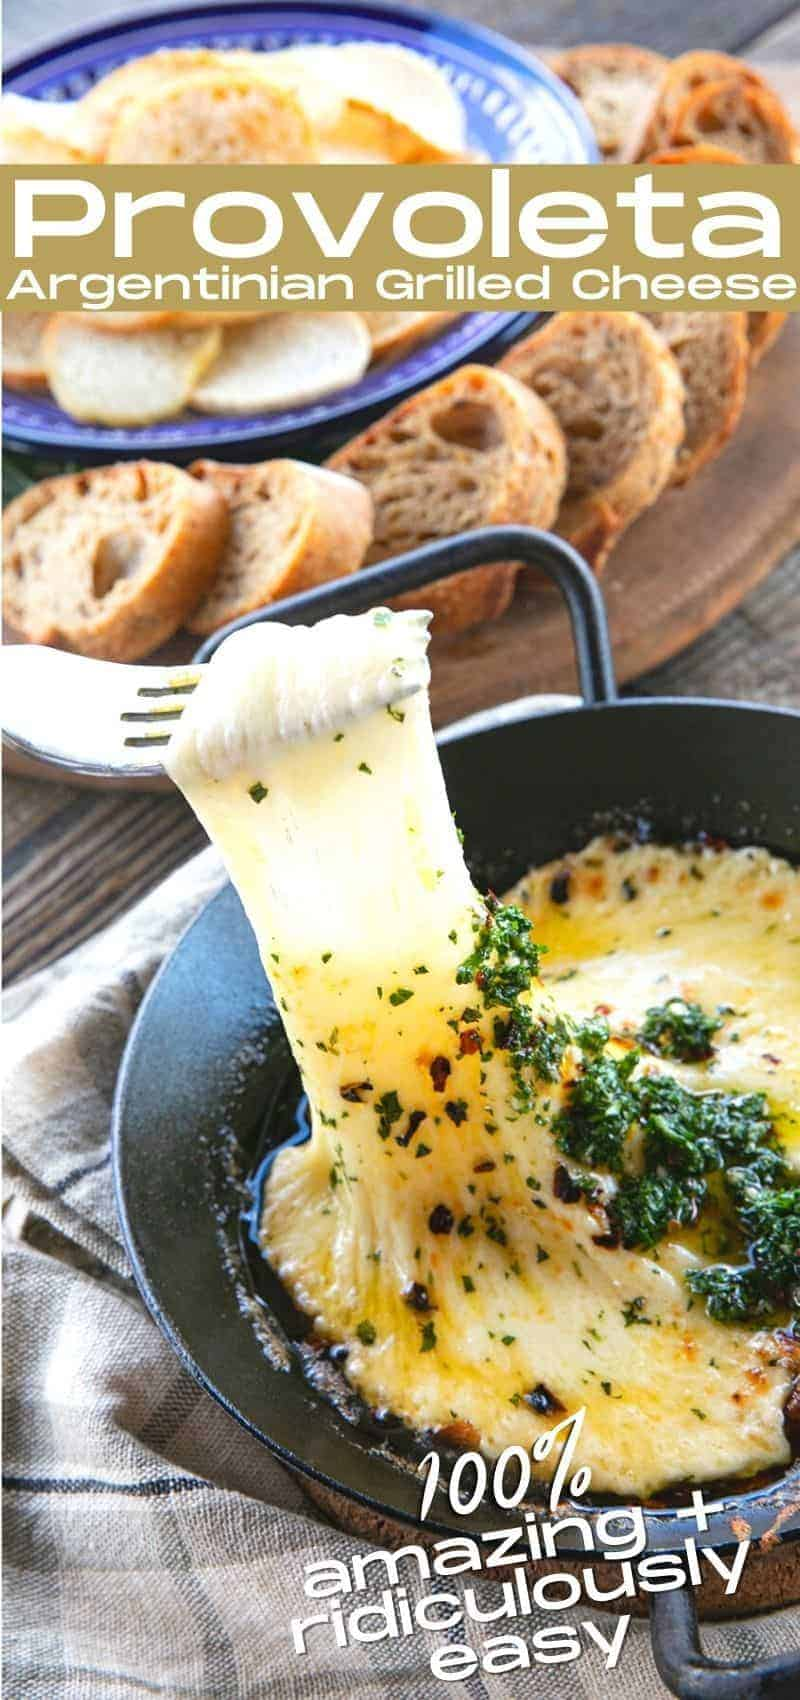 Provoleta -or Fried Cheese- is a delicious Argentinian cheese dish of pan-fried provolone cheese with crushed red pepper flakes and delicious garlic and herb chimichurri. An easier and more enticing appetizer simply doesn't exist!